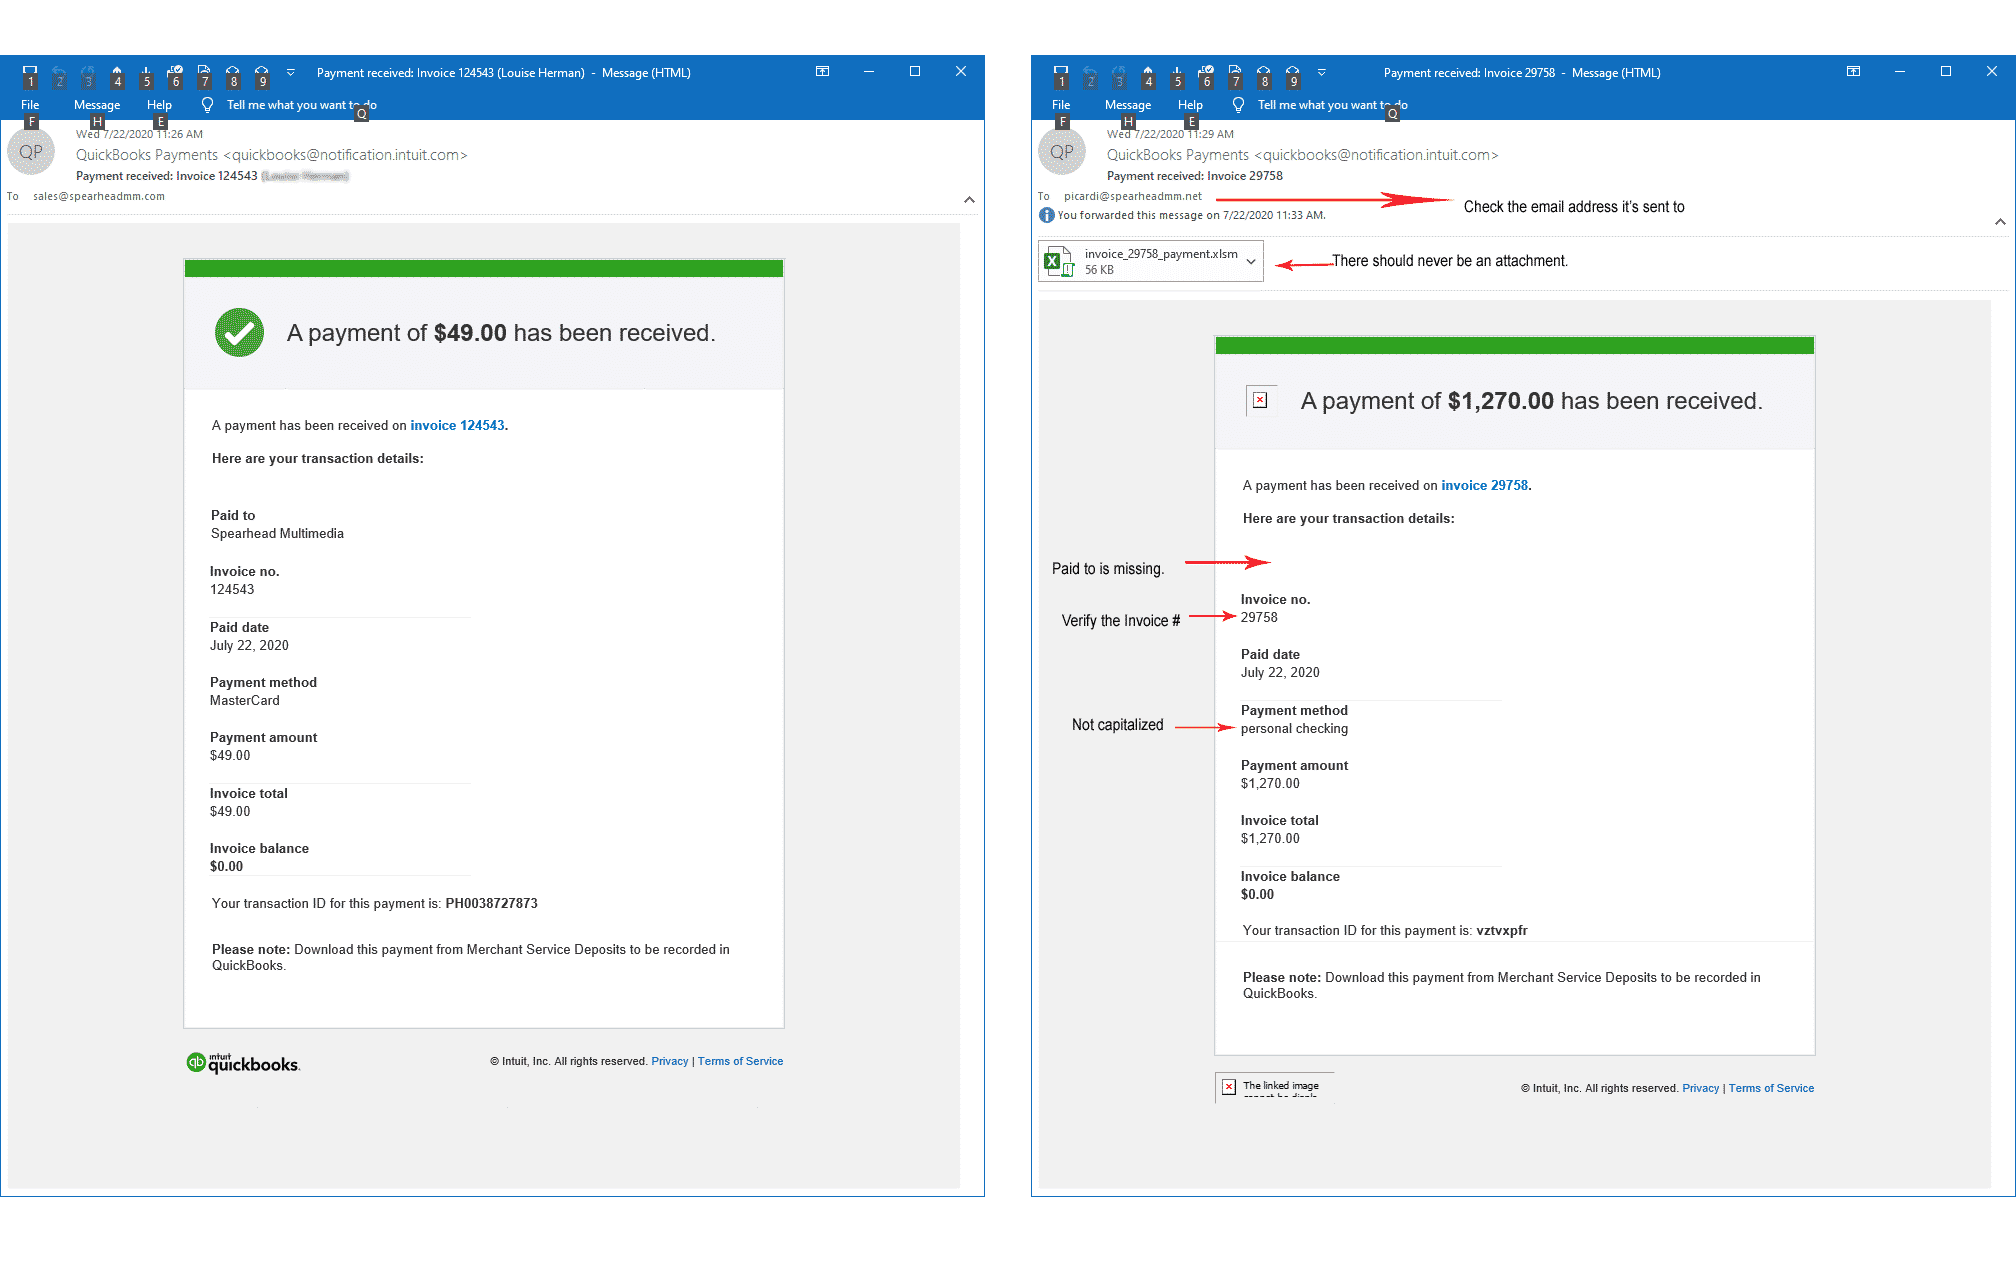 QuickBooks Payment Phishing email vs. real payment email